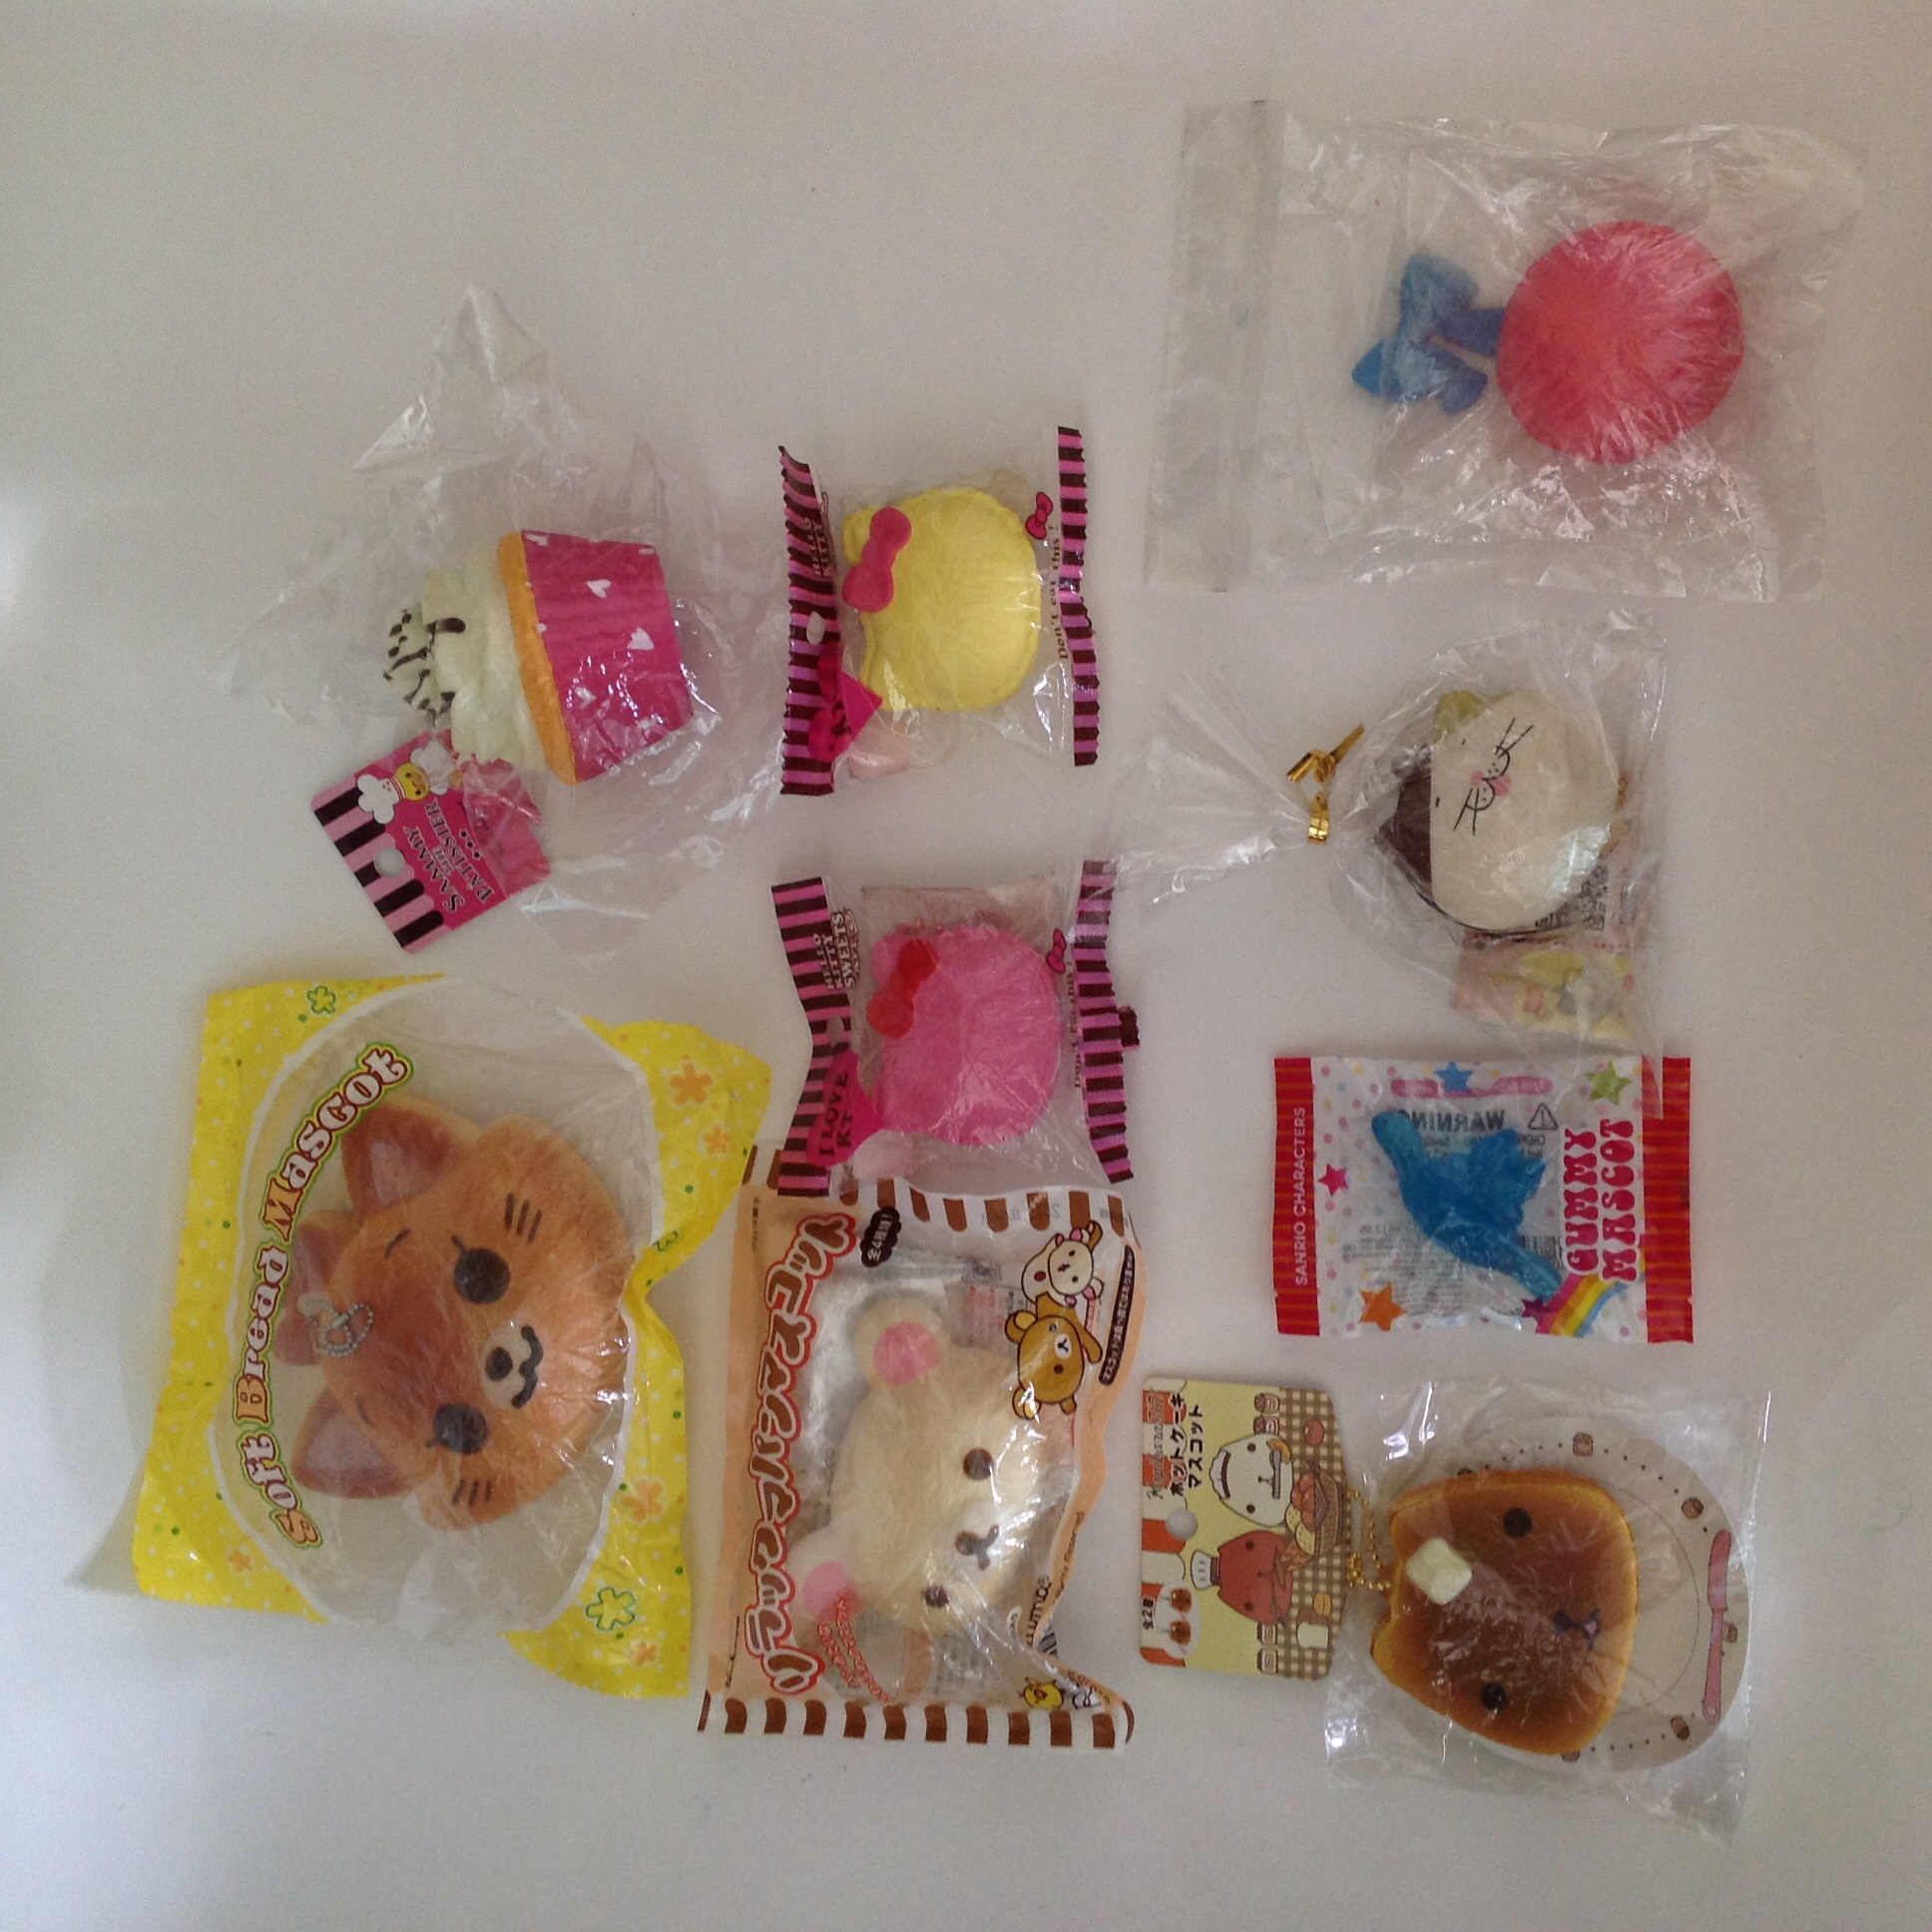 Huge Rare Squishy Collection : Gummy mascot & Super rare squishy grabbag ? SuzyCupcake ? Online Store Powered by Storenvy